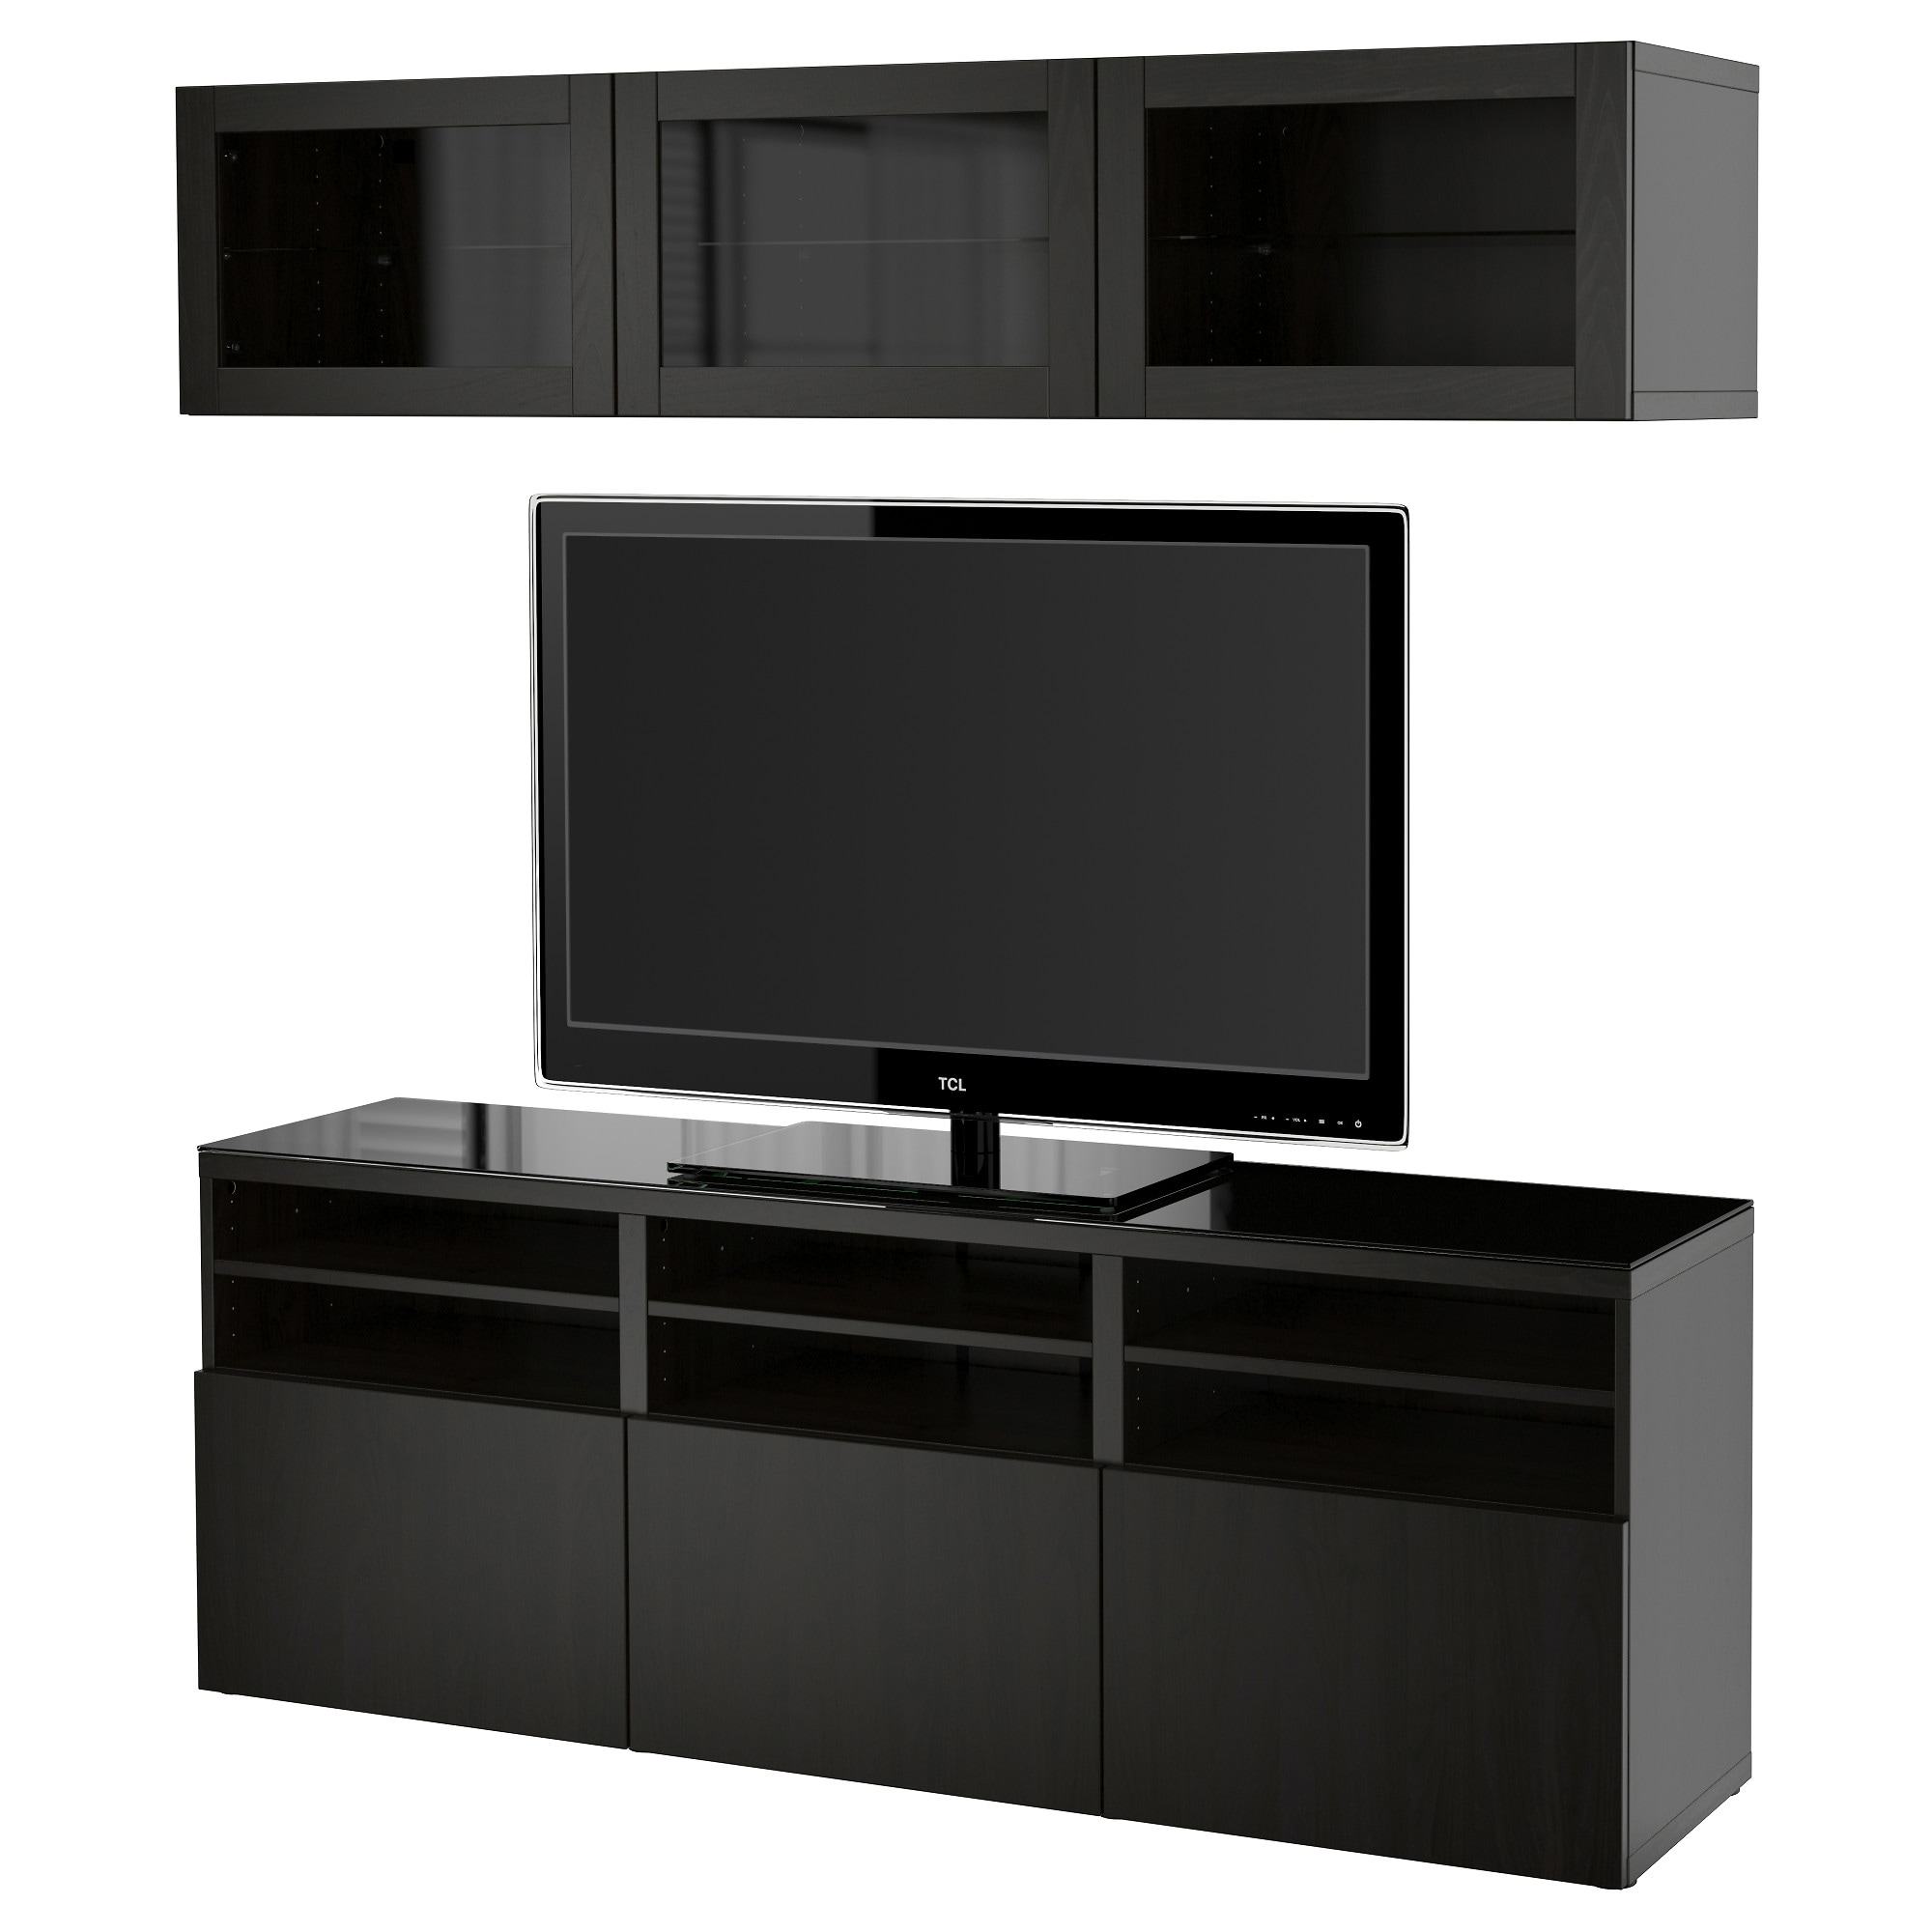 BEST TV Storage Combination Glass Doors Lappviken Sindvik Black Brown Clear